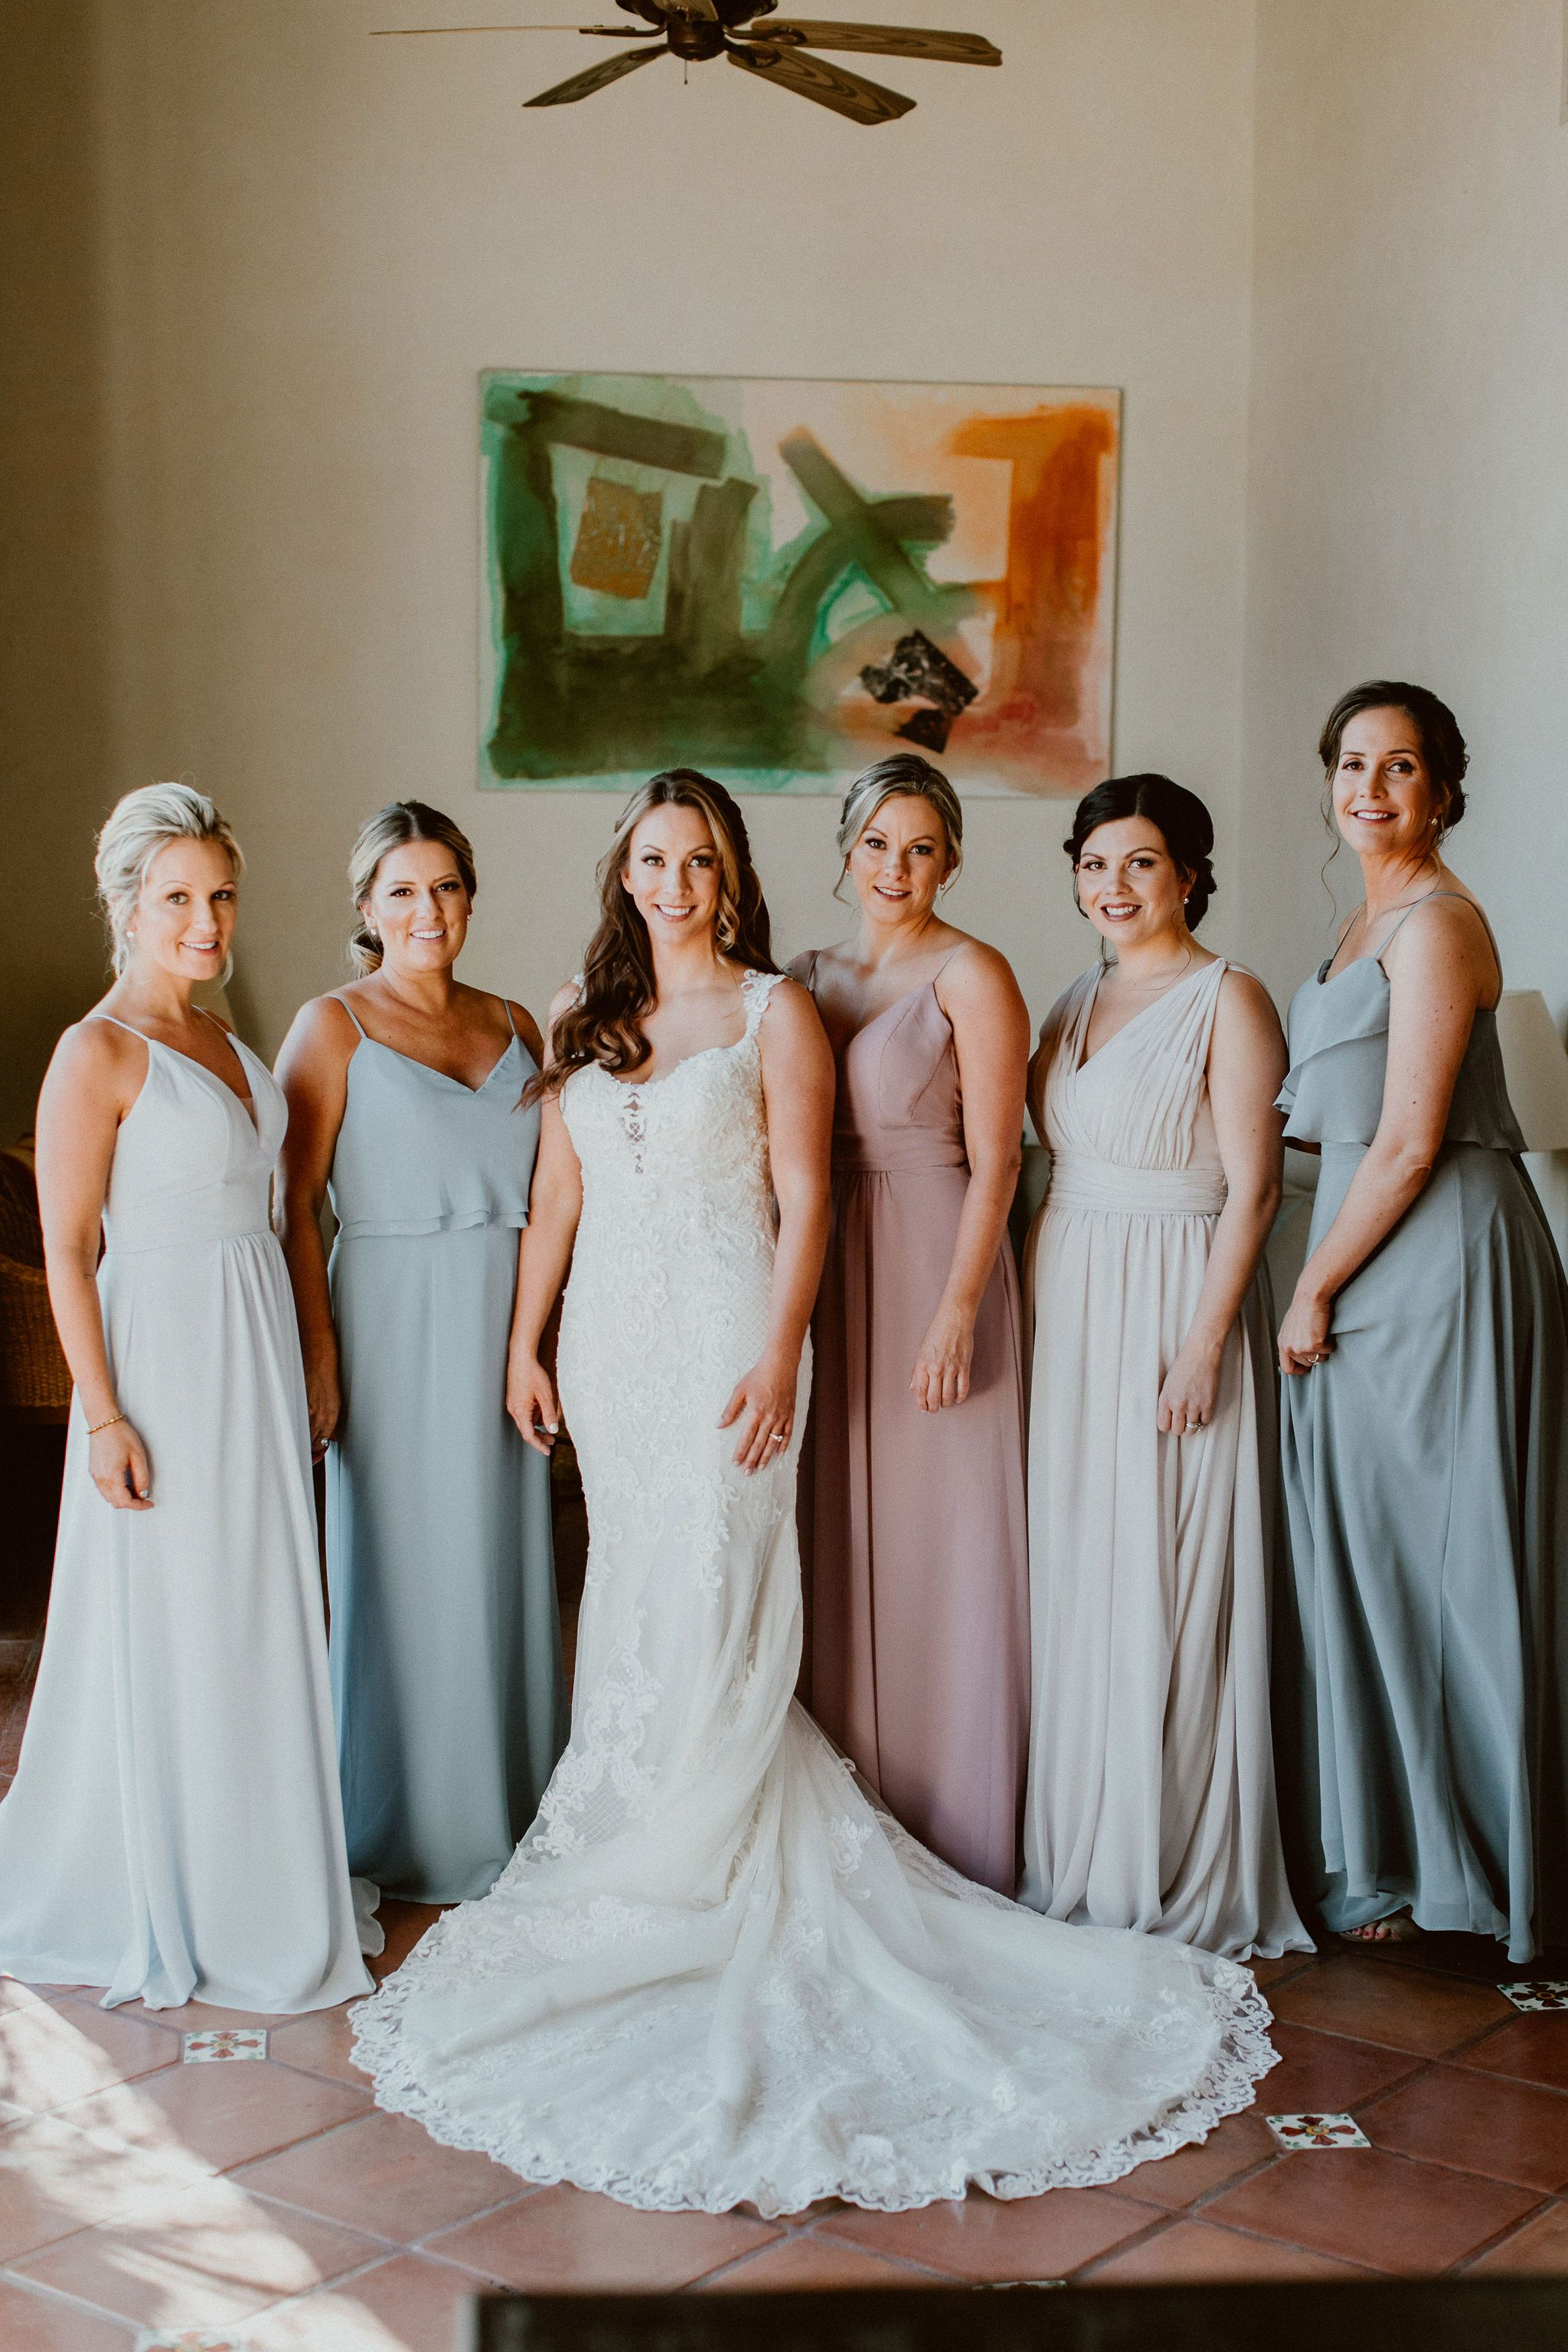 Jen and her Bridesmaids ready to go do the First Look. Their wedding venue was at Cabo del Sol and us, Cabo Wedding Services, were there Wedding Planners. They hired Ana and Jerome from Ana and Jerome Photography, as well as Emporio, for their floral and decor.